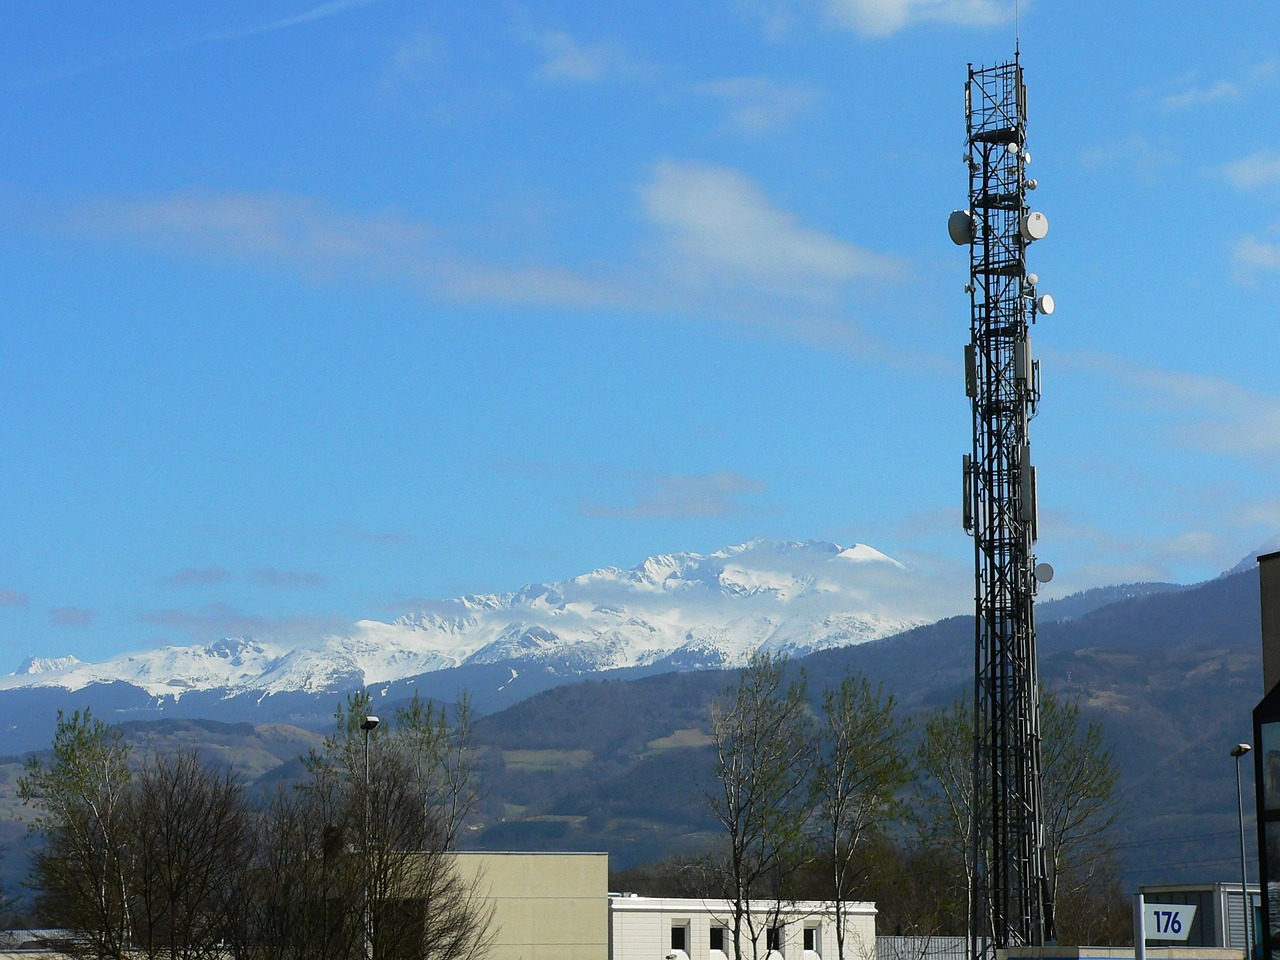 To Buy or Not to Buy: That is the 700MHz Question